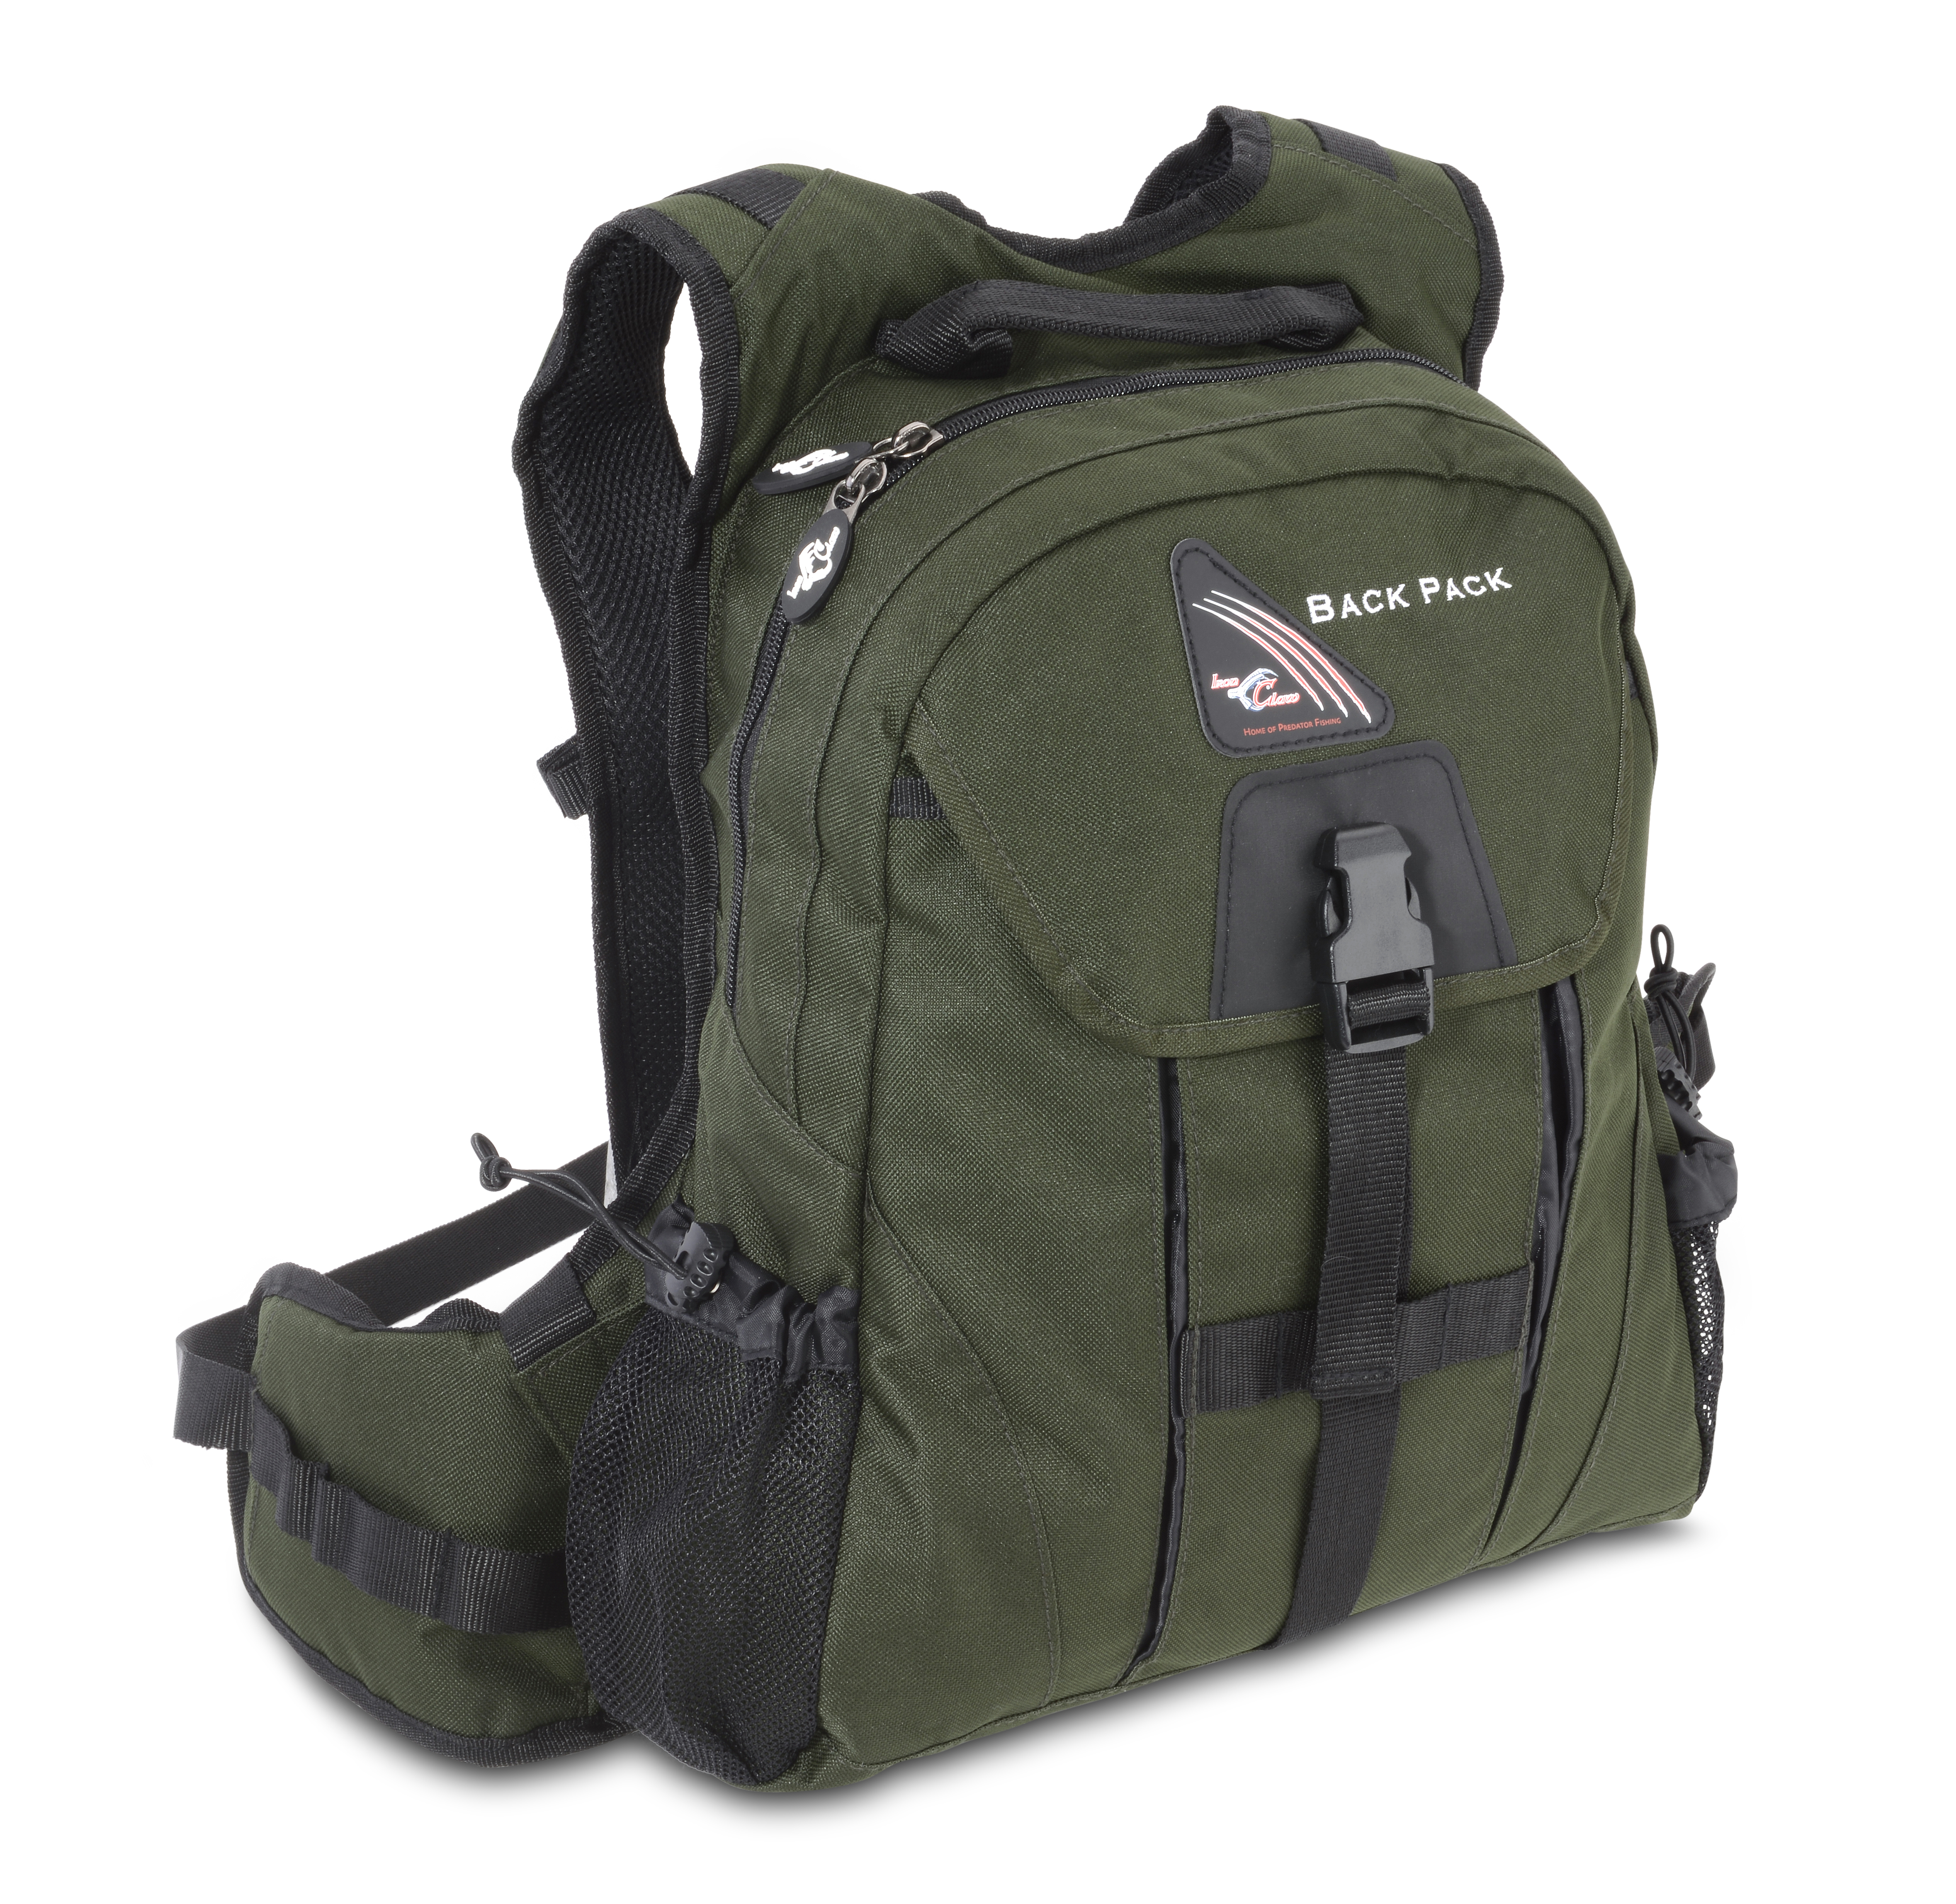 Batoh Iron Claw Back Pack